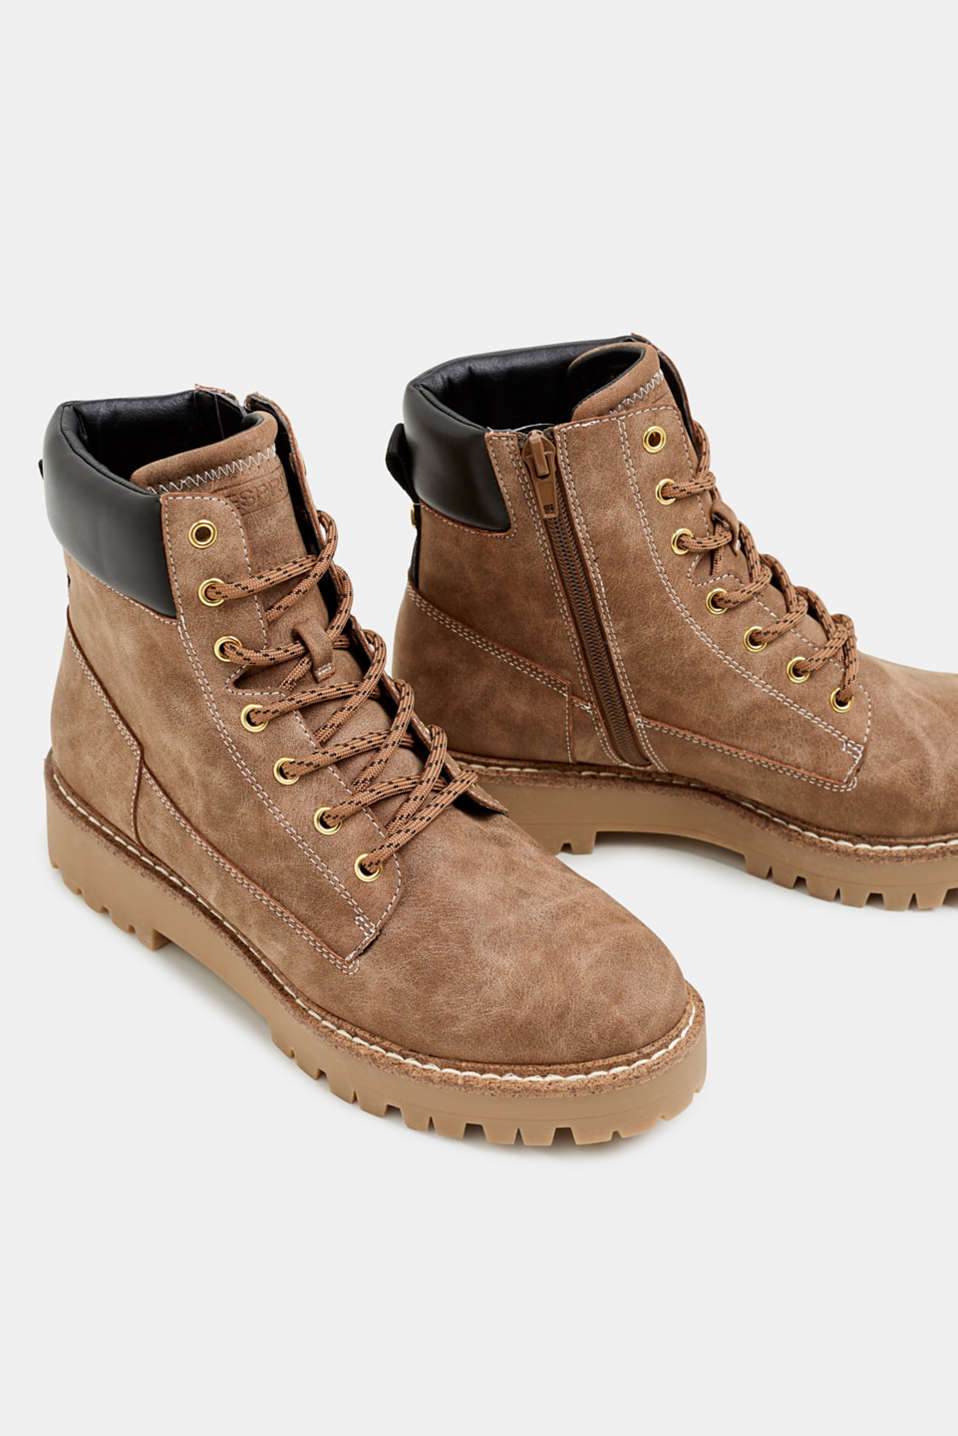 Lace-up boots in a rustic look, KHAKI BEIGE, detail image number 4